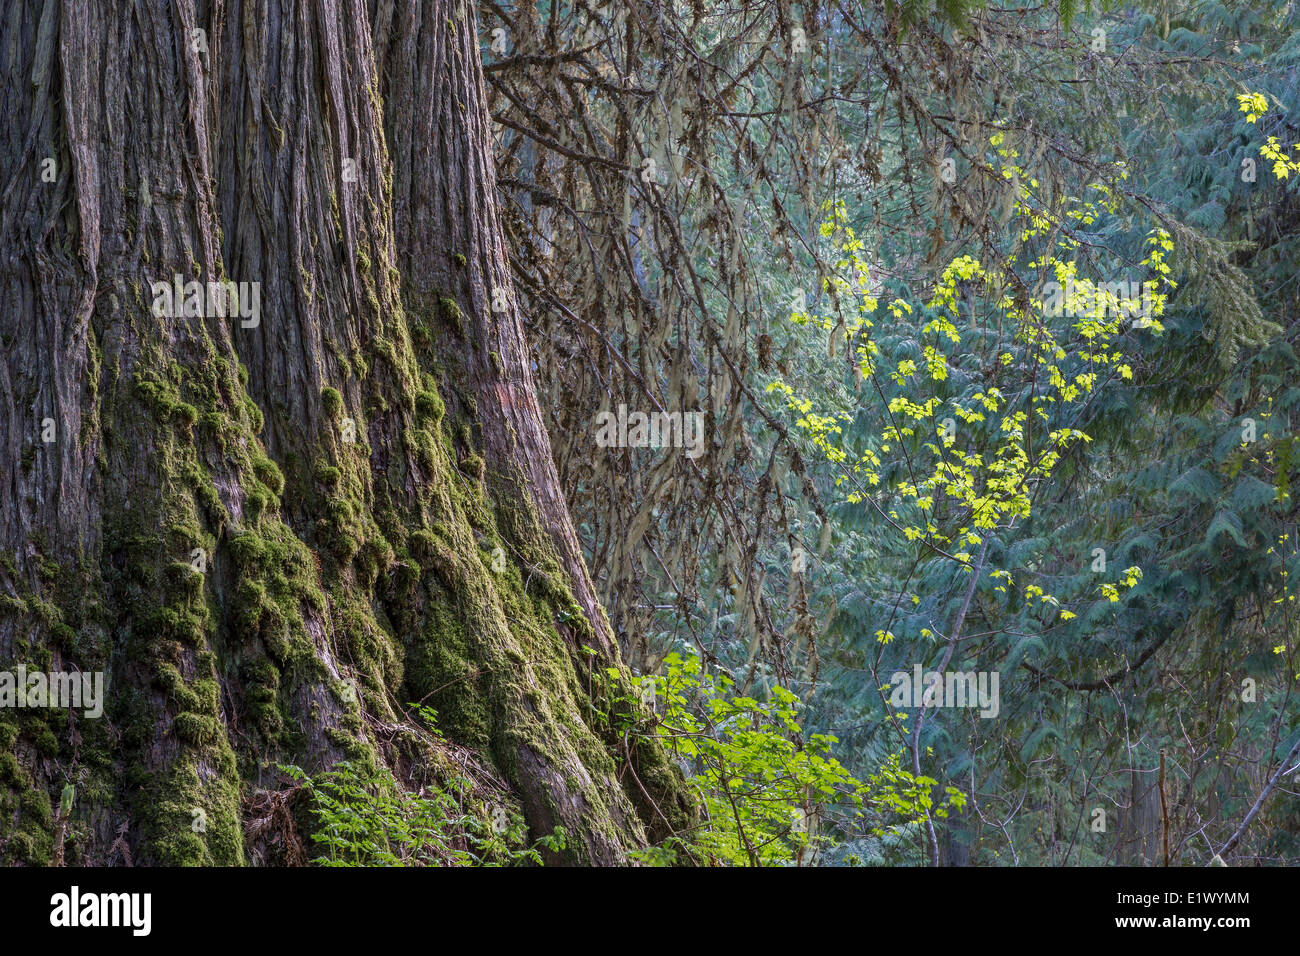 British Columbia, Canada, Ancient Forest, Inland Rainforest, Robson Valley, Western redcedar, thuja plicate, - Stock Image